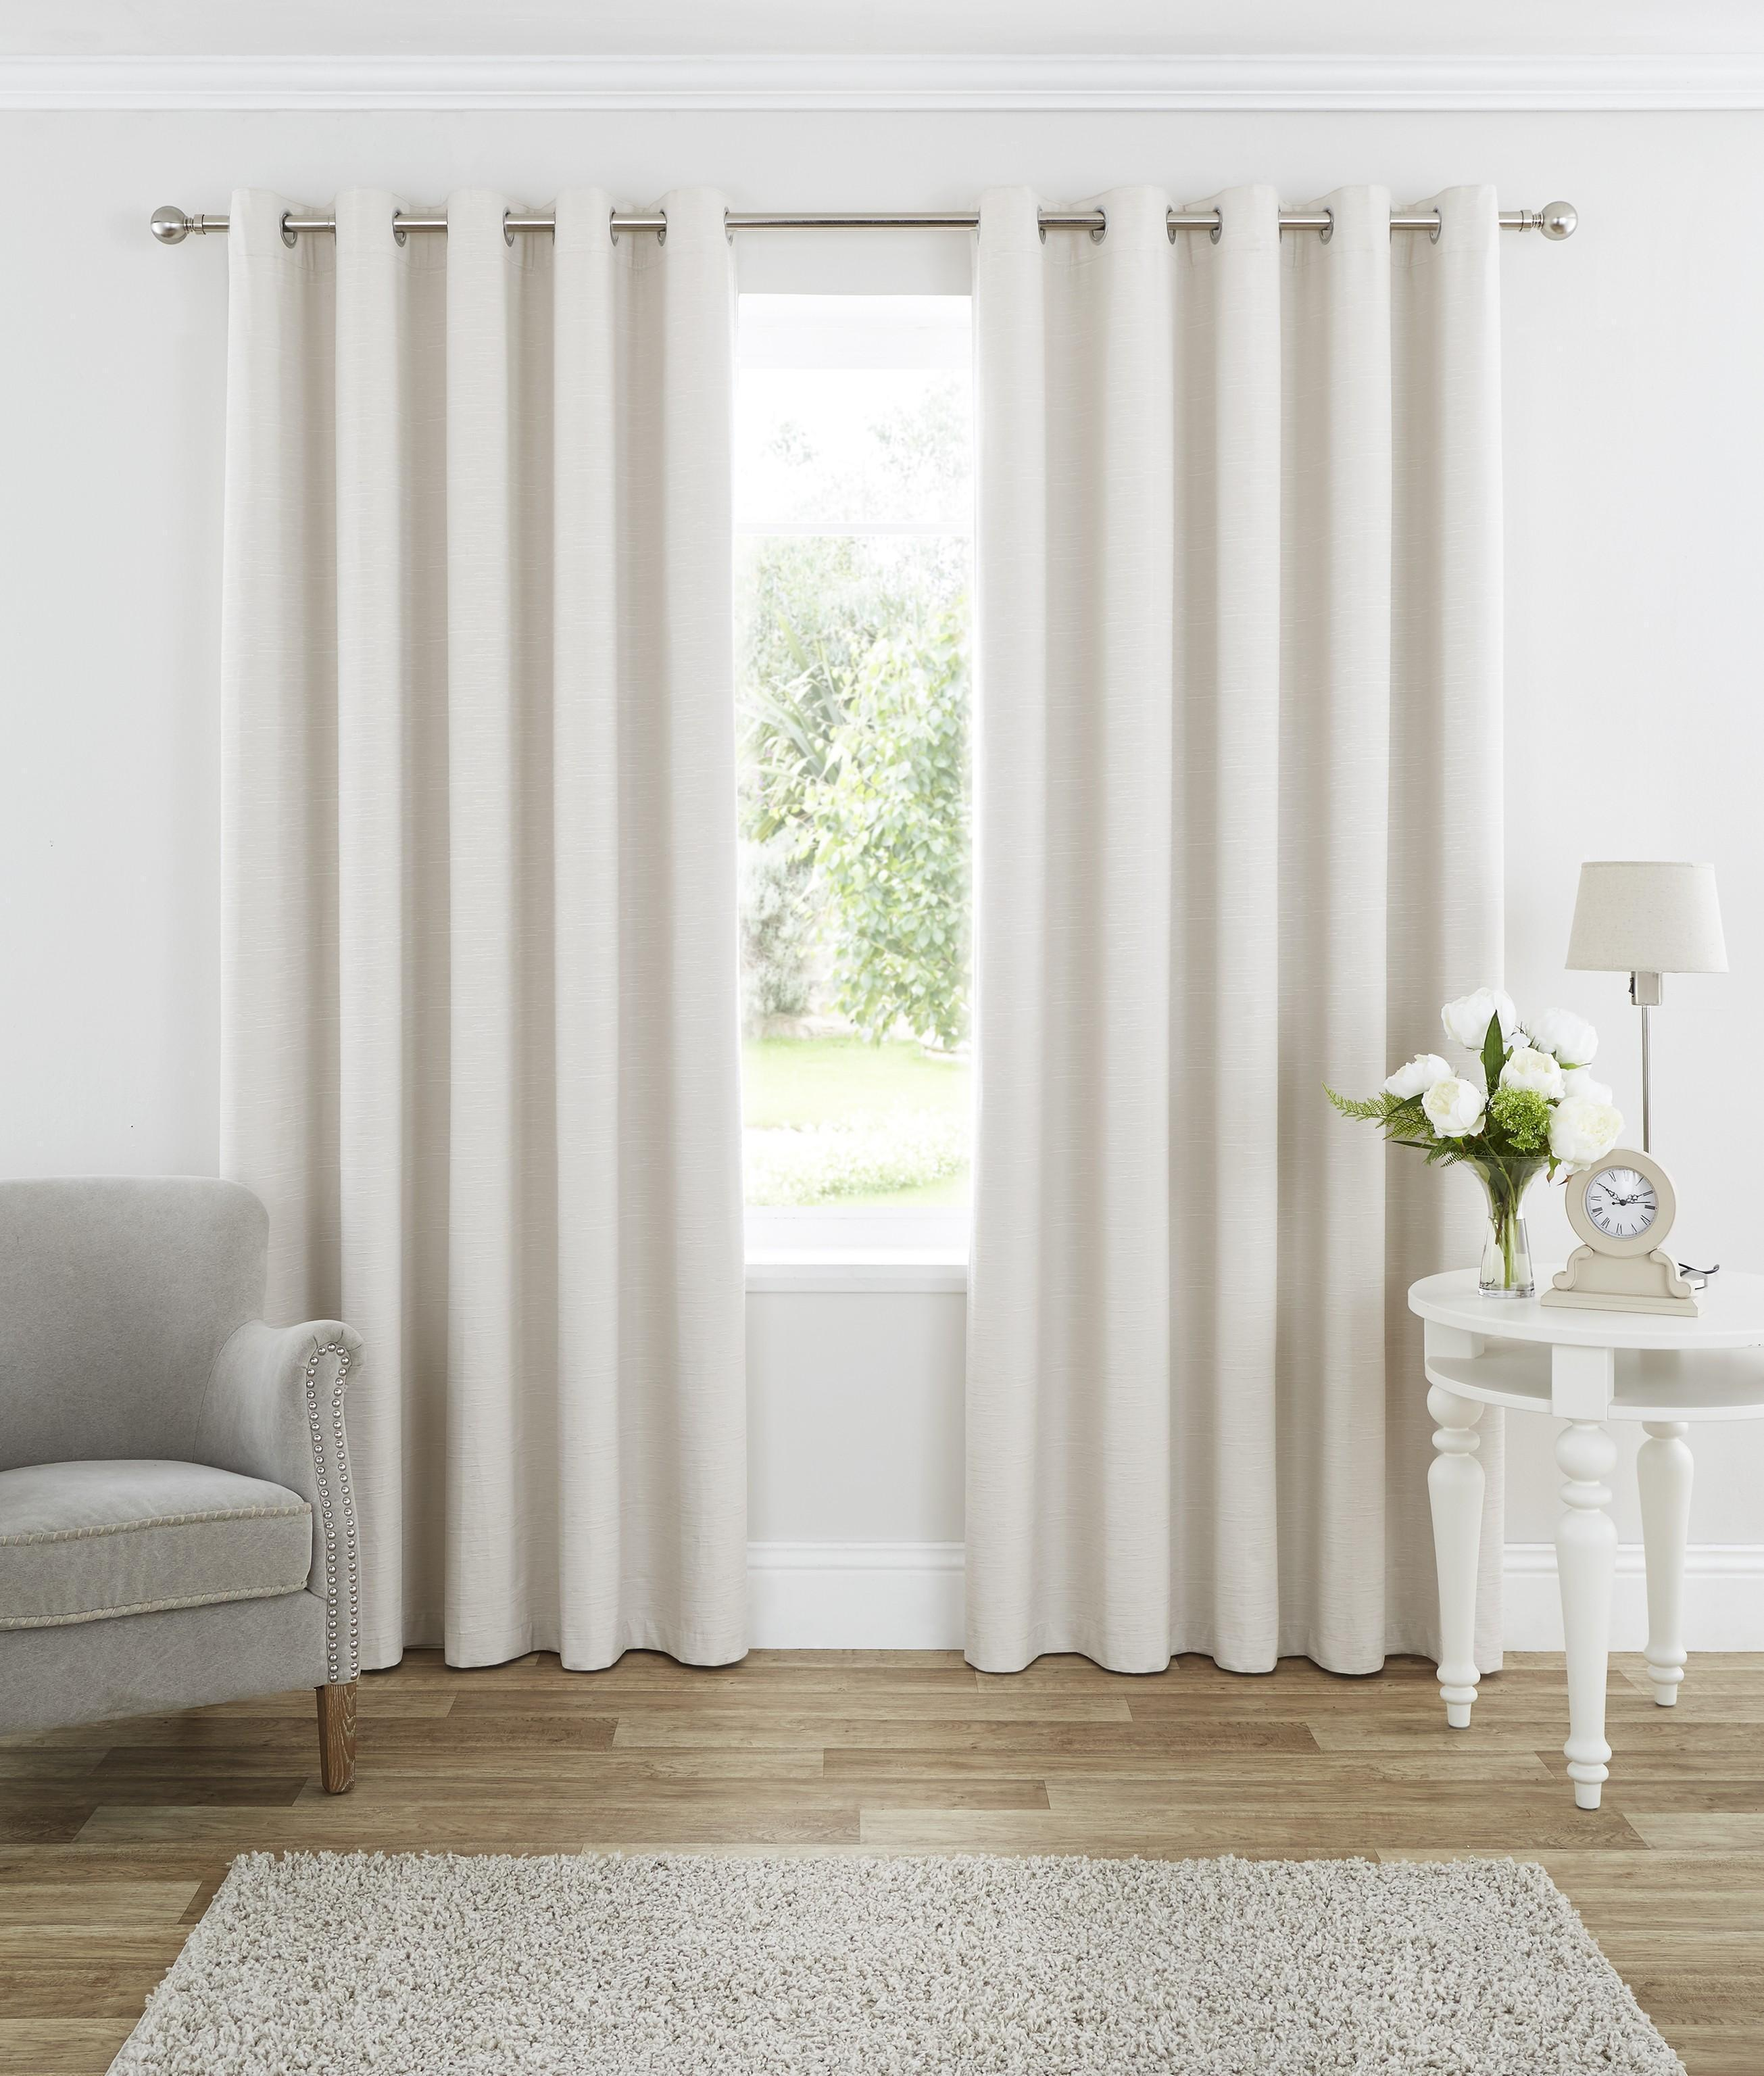 Cream Bedroom Curtains. Harmony Blackout Eyelet Curtains